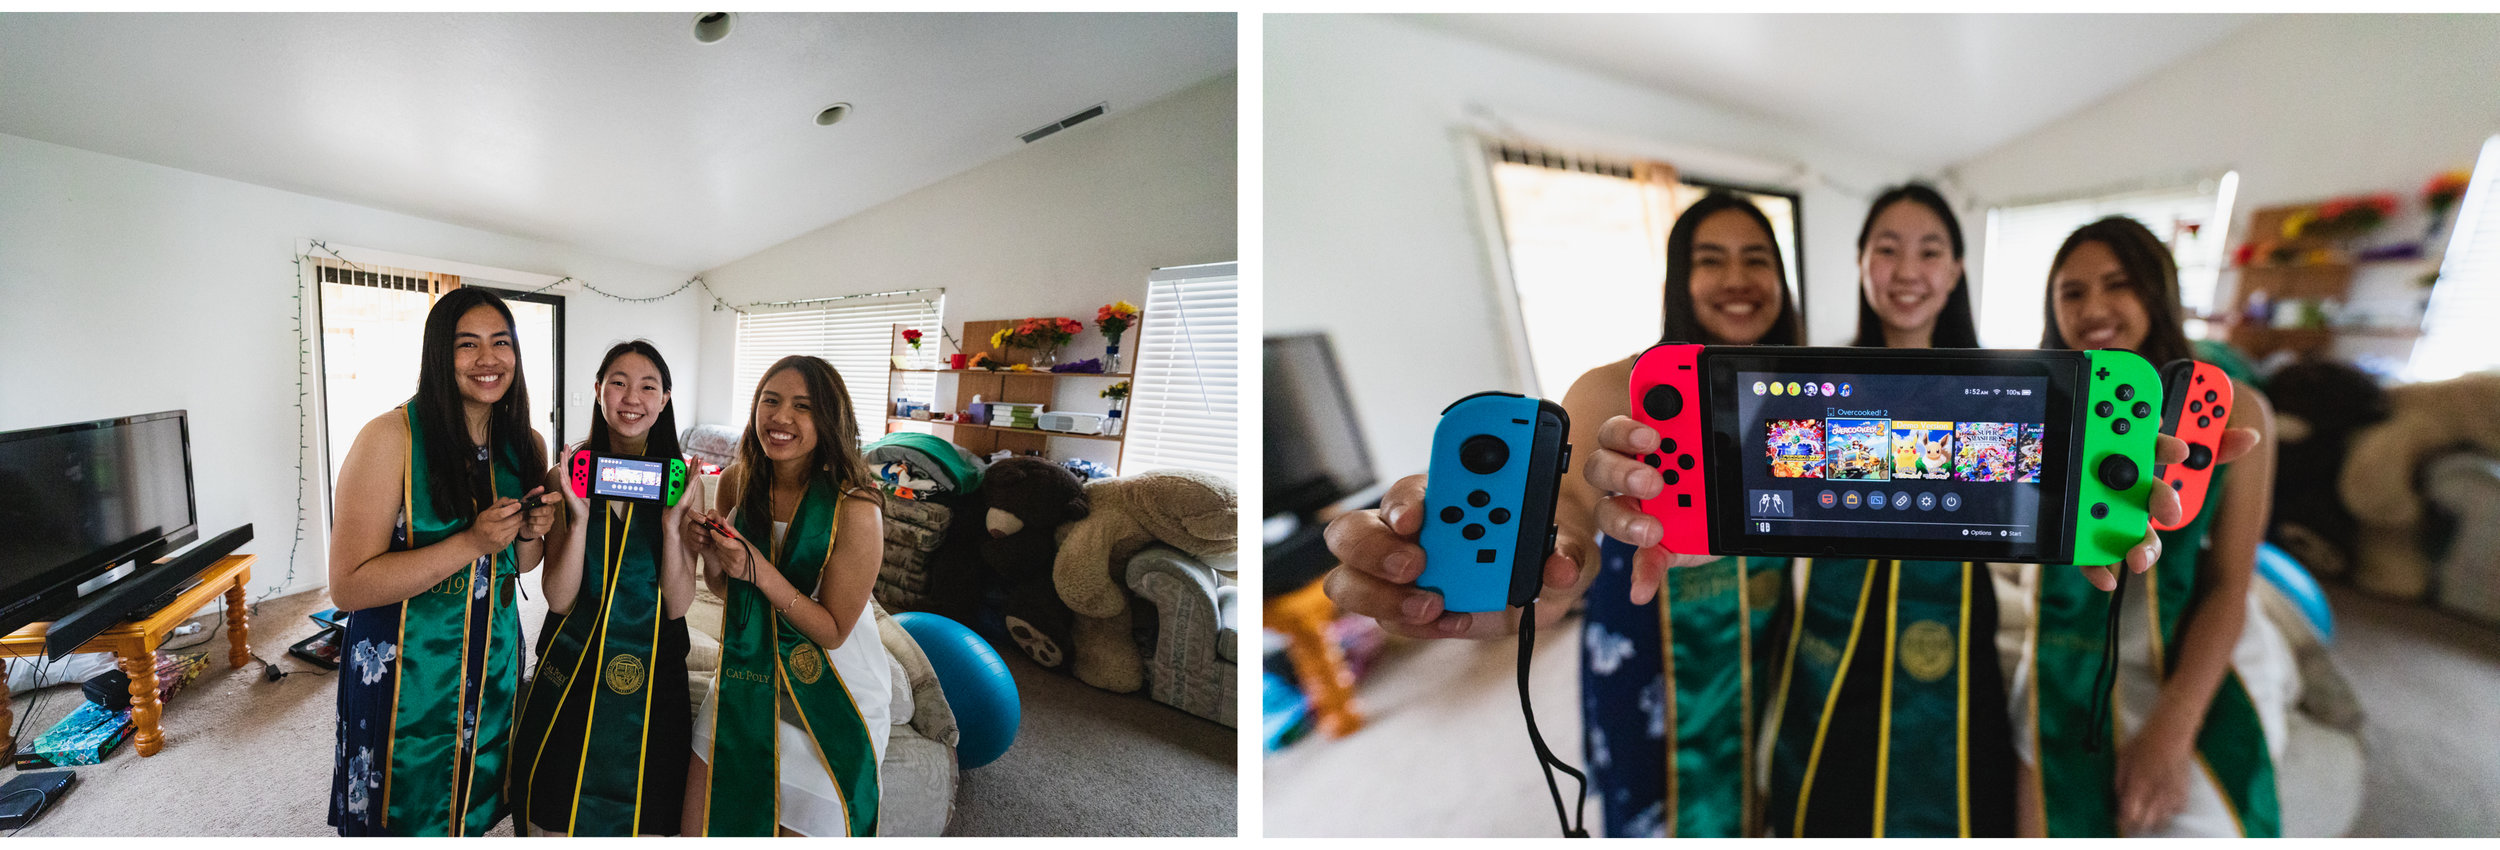 Nintendo Switch Johe.jpg